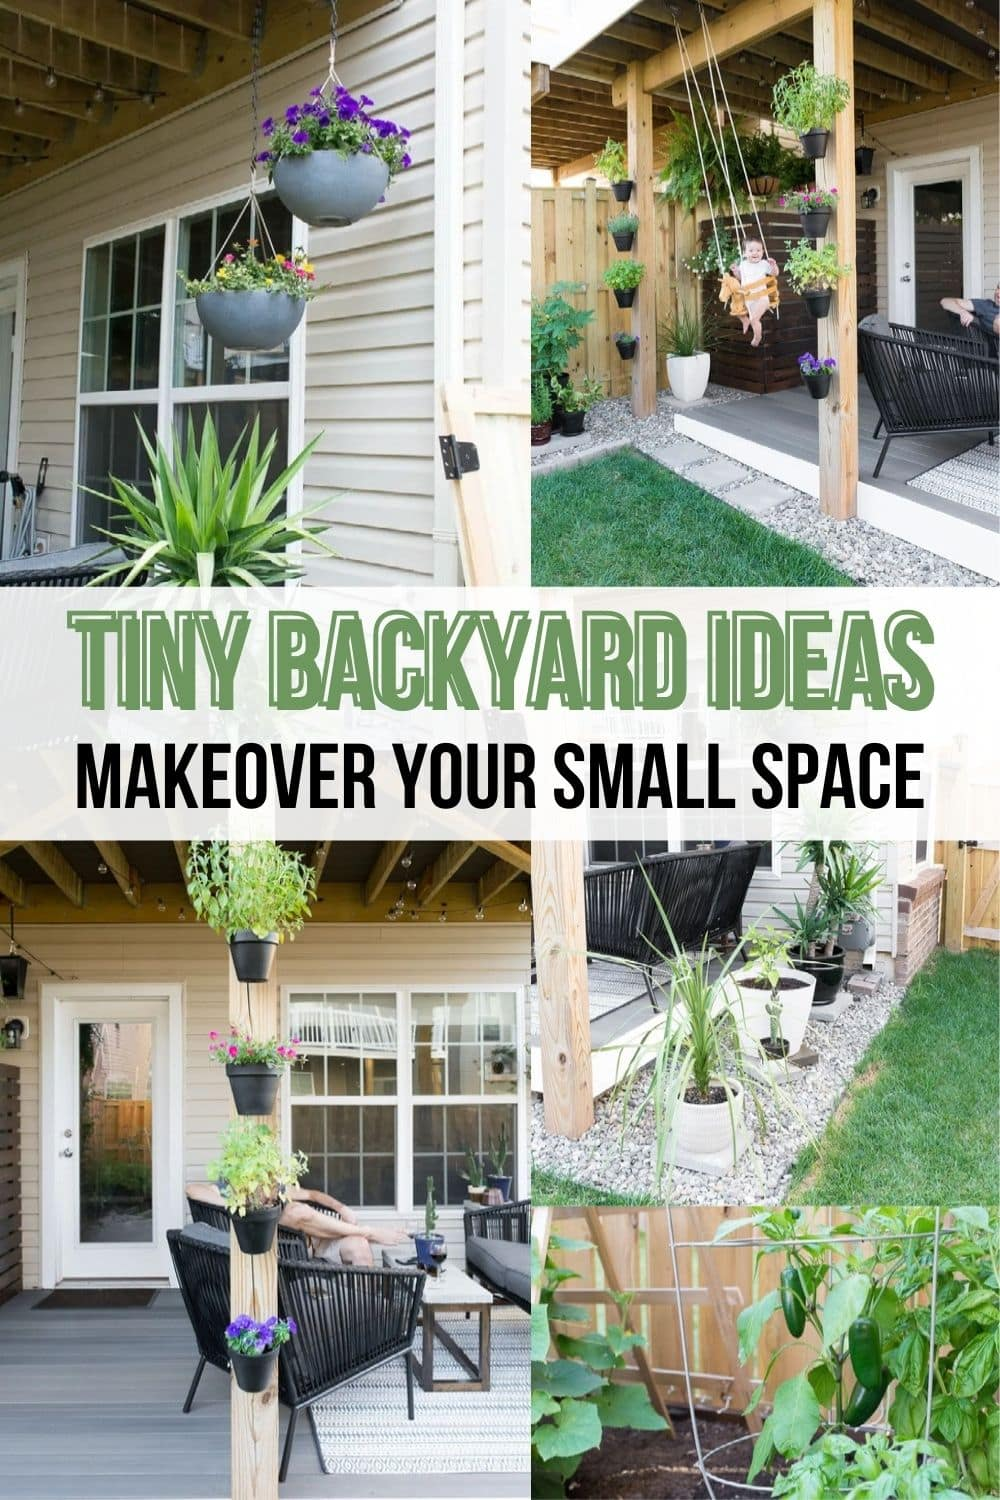 image collage of tiny backyard ideas with text Tiny Backyard Ideas Makeover your small space